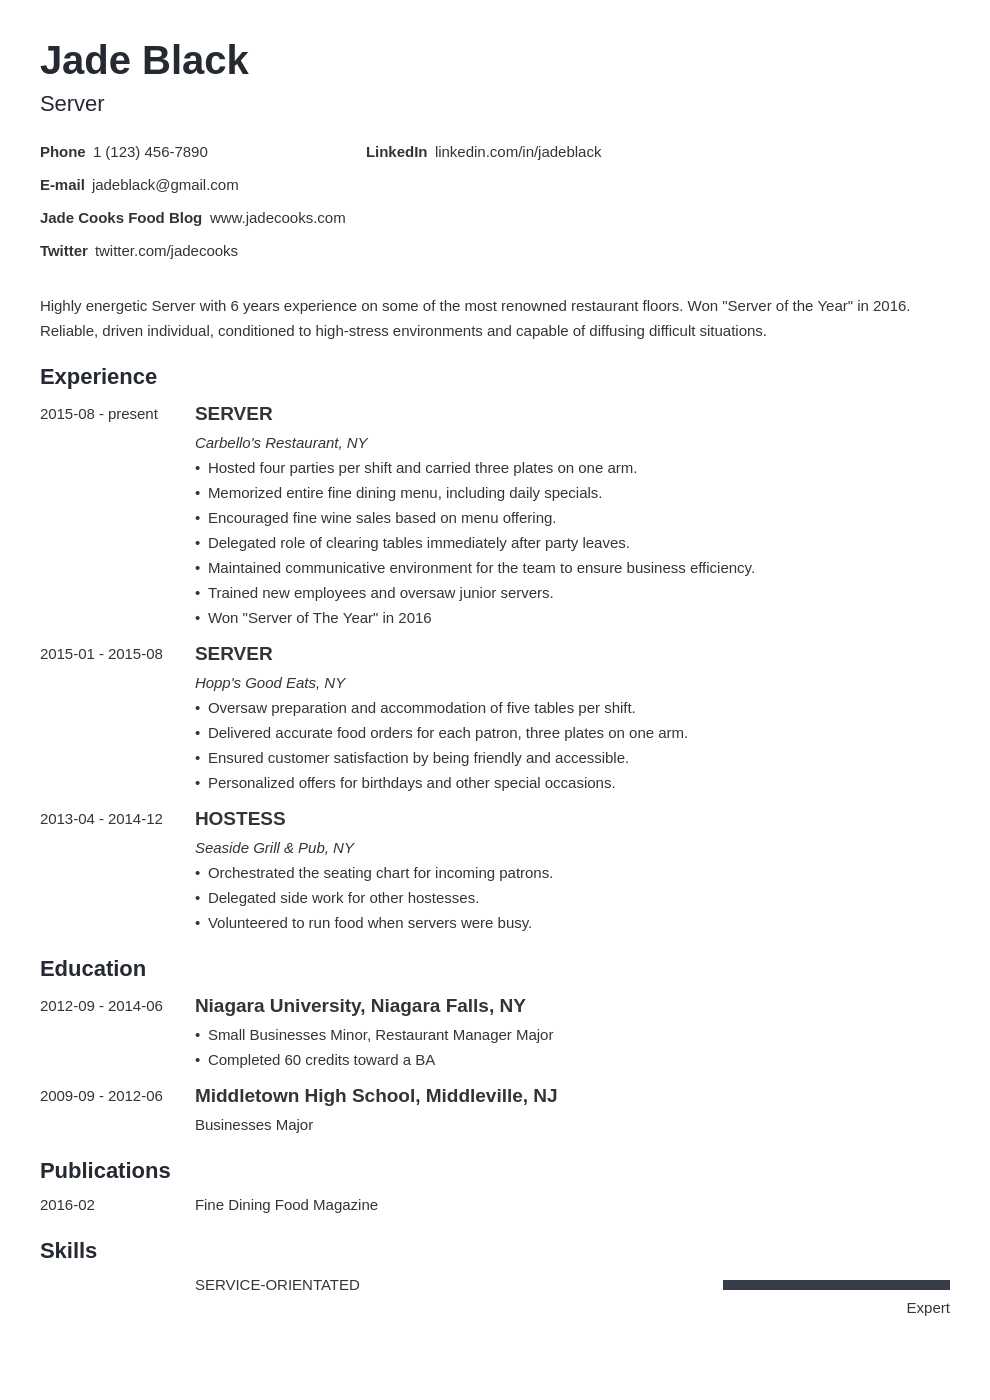 Job responsibilities of a server for a resume essaytown control panel